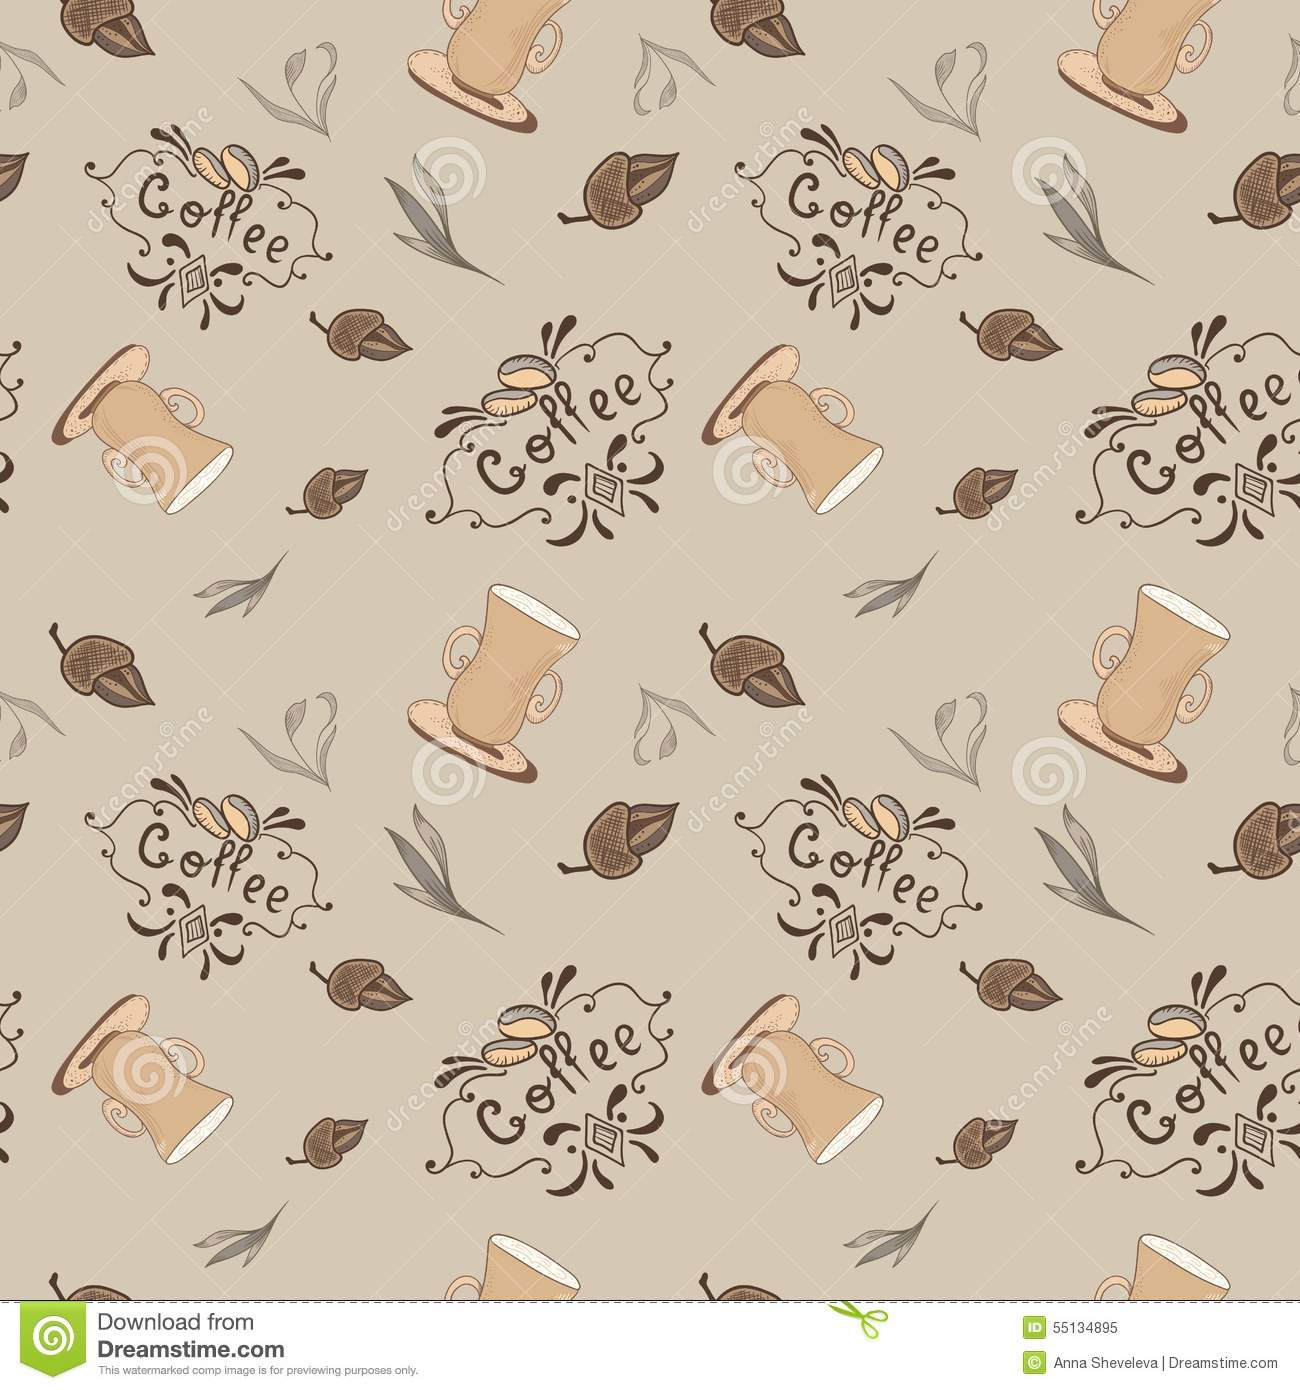 vintage coffee wallpaper - photo #37